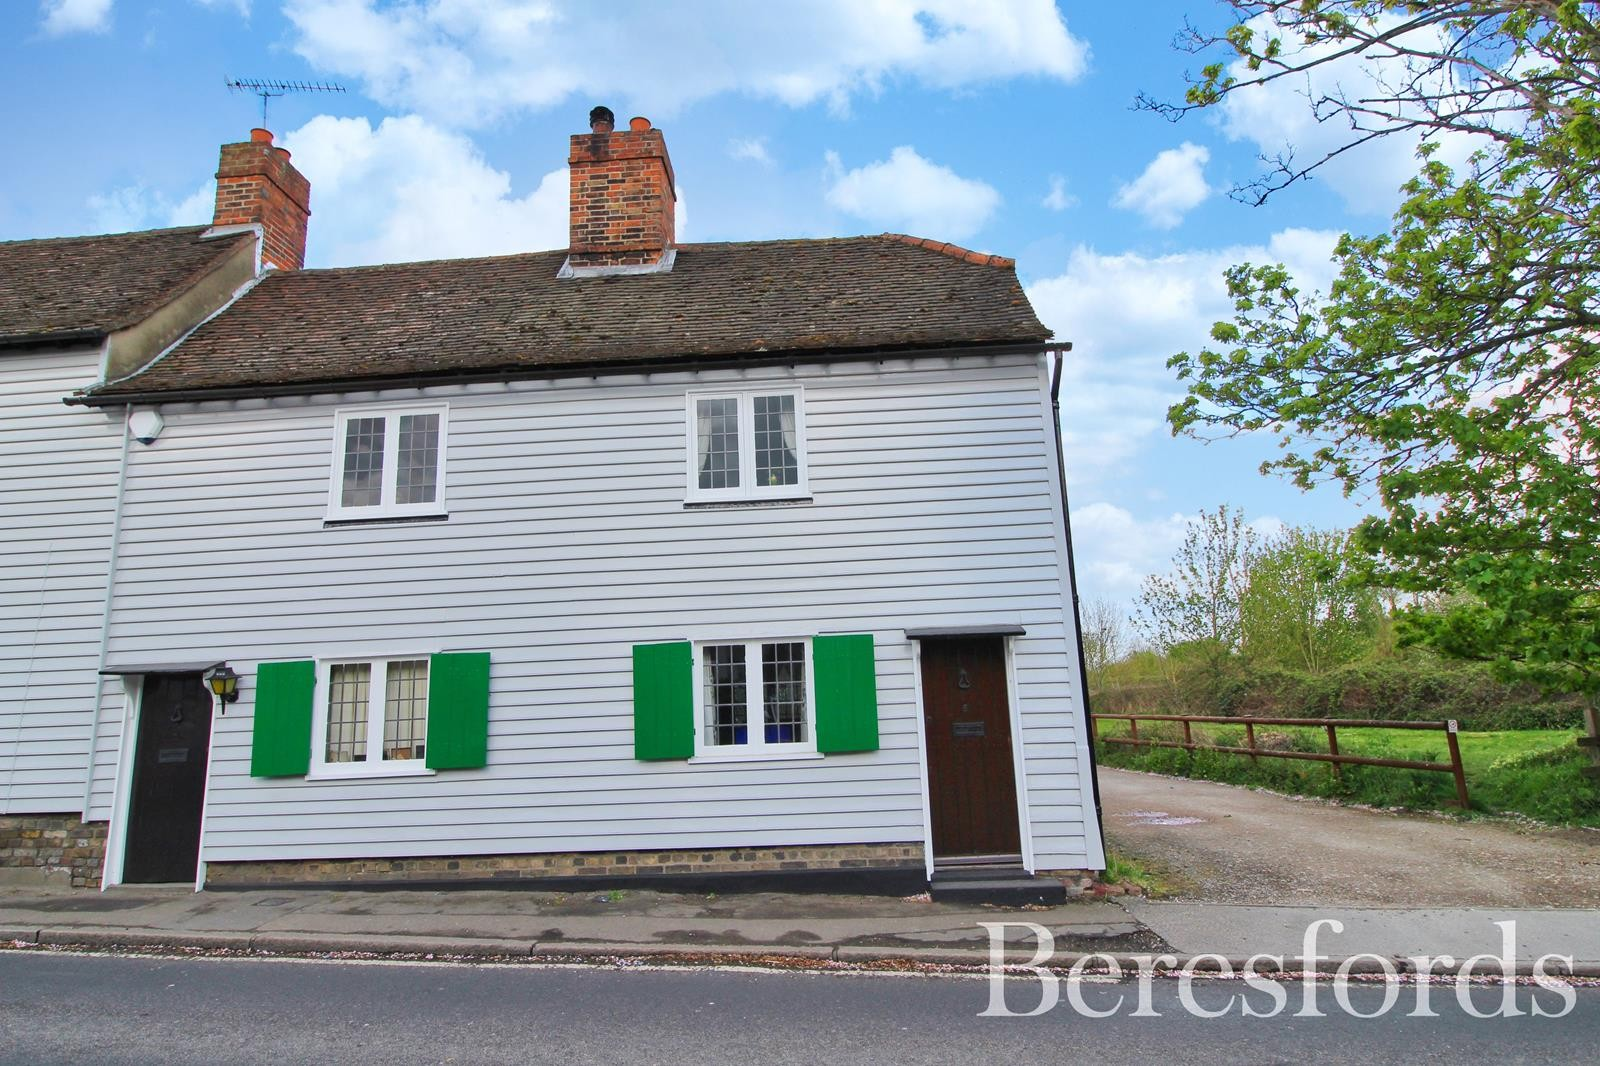 Bear Block Cottages, Harwood Hall Lane, Upminster, Essex, RM14